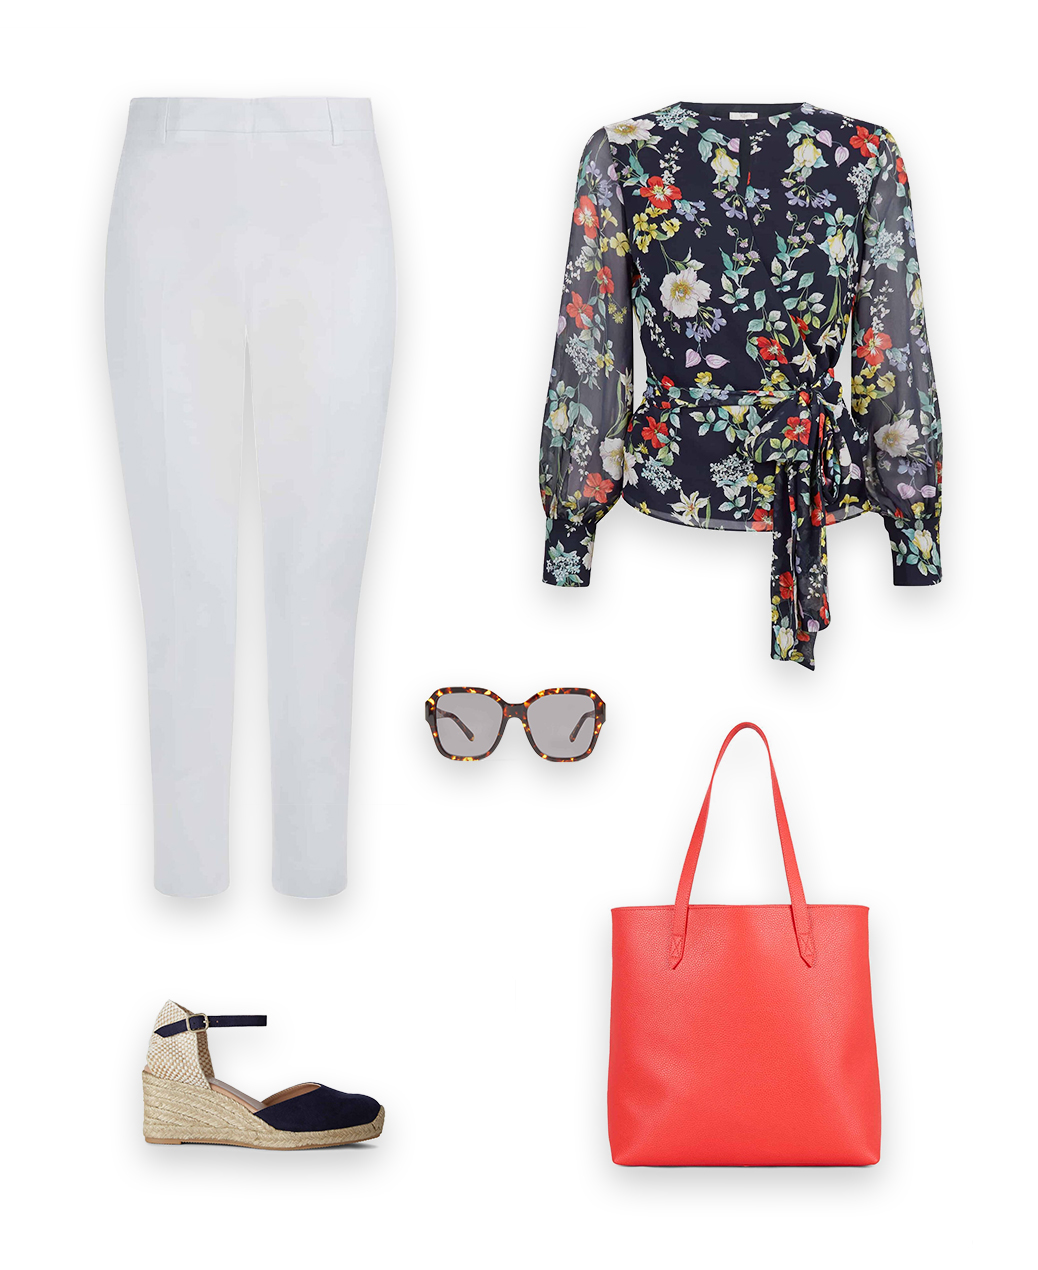 Staycation Look with the meadow blouse, ith white tailored trousers, navy blue leather espadrilles and red leather tote bag and sunglasses.